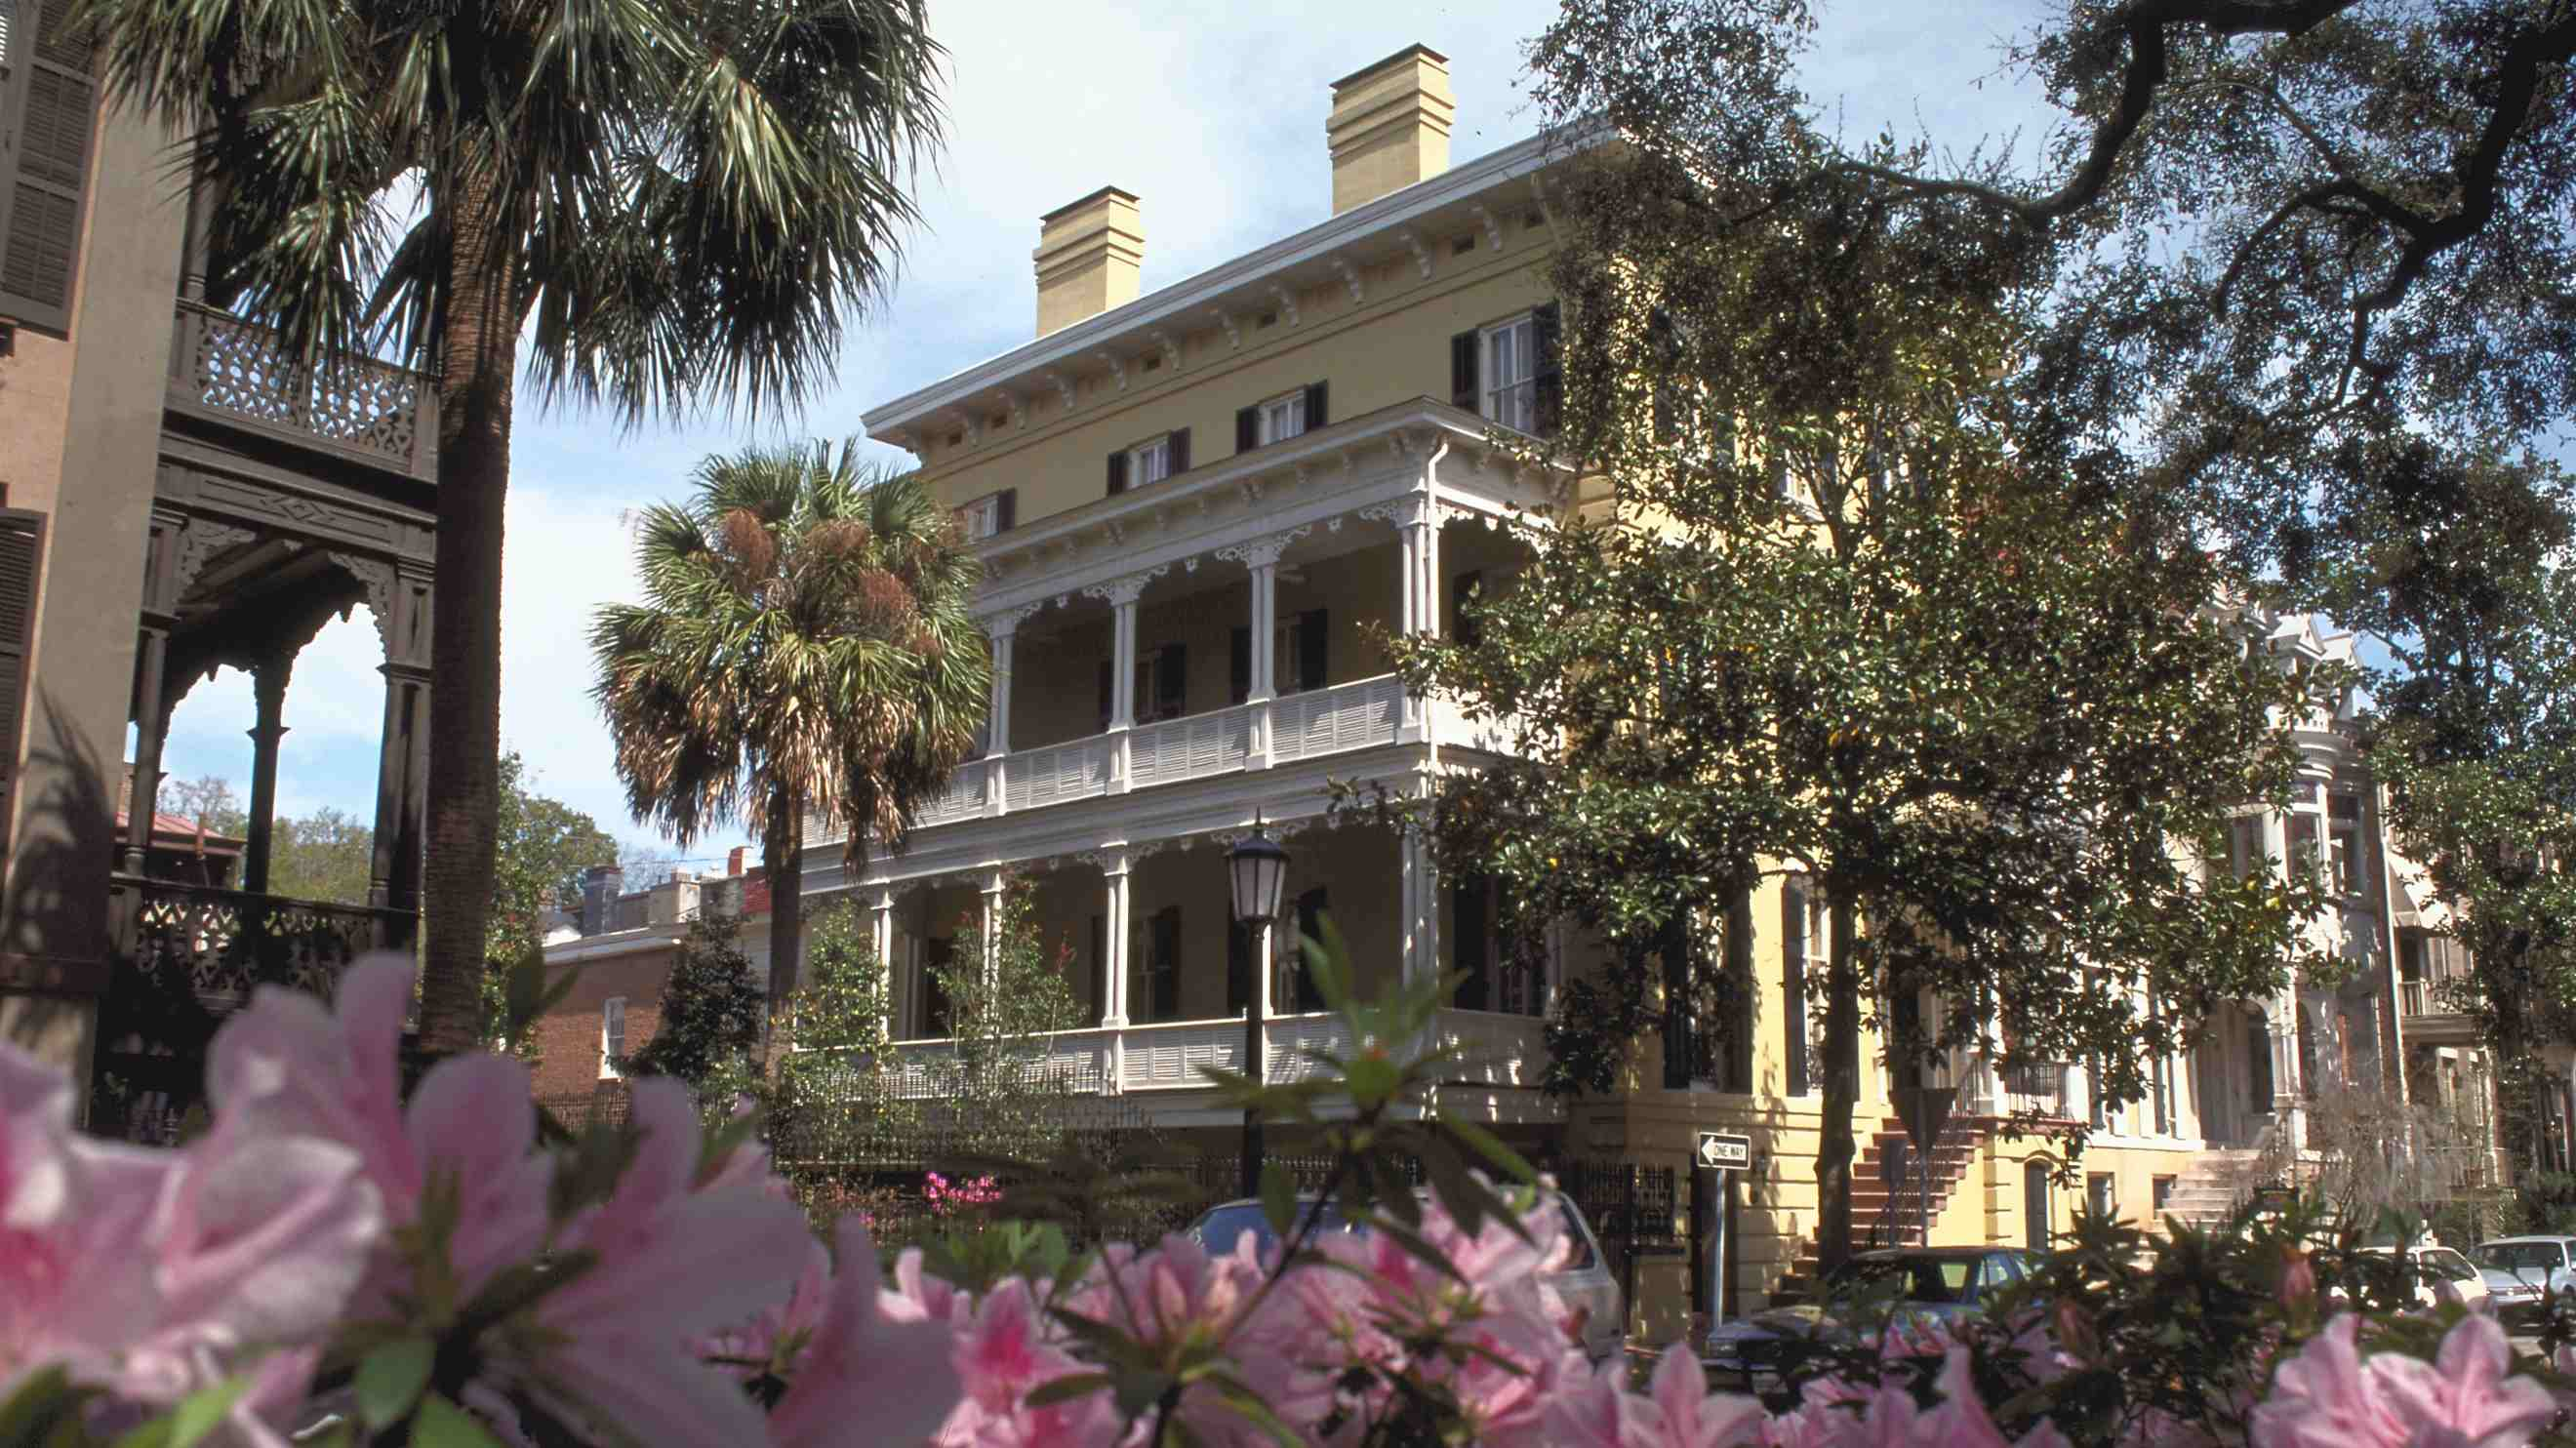 The 10 Best Hotels In Savannah For 2019 Expedia